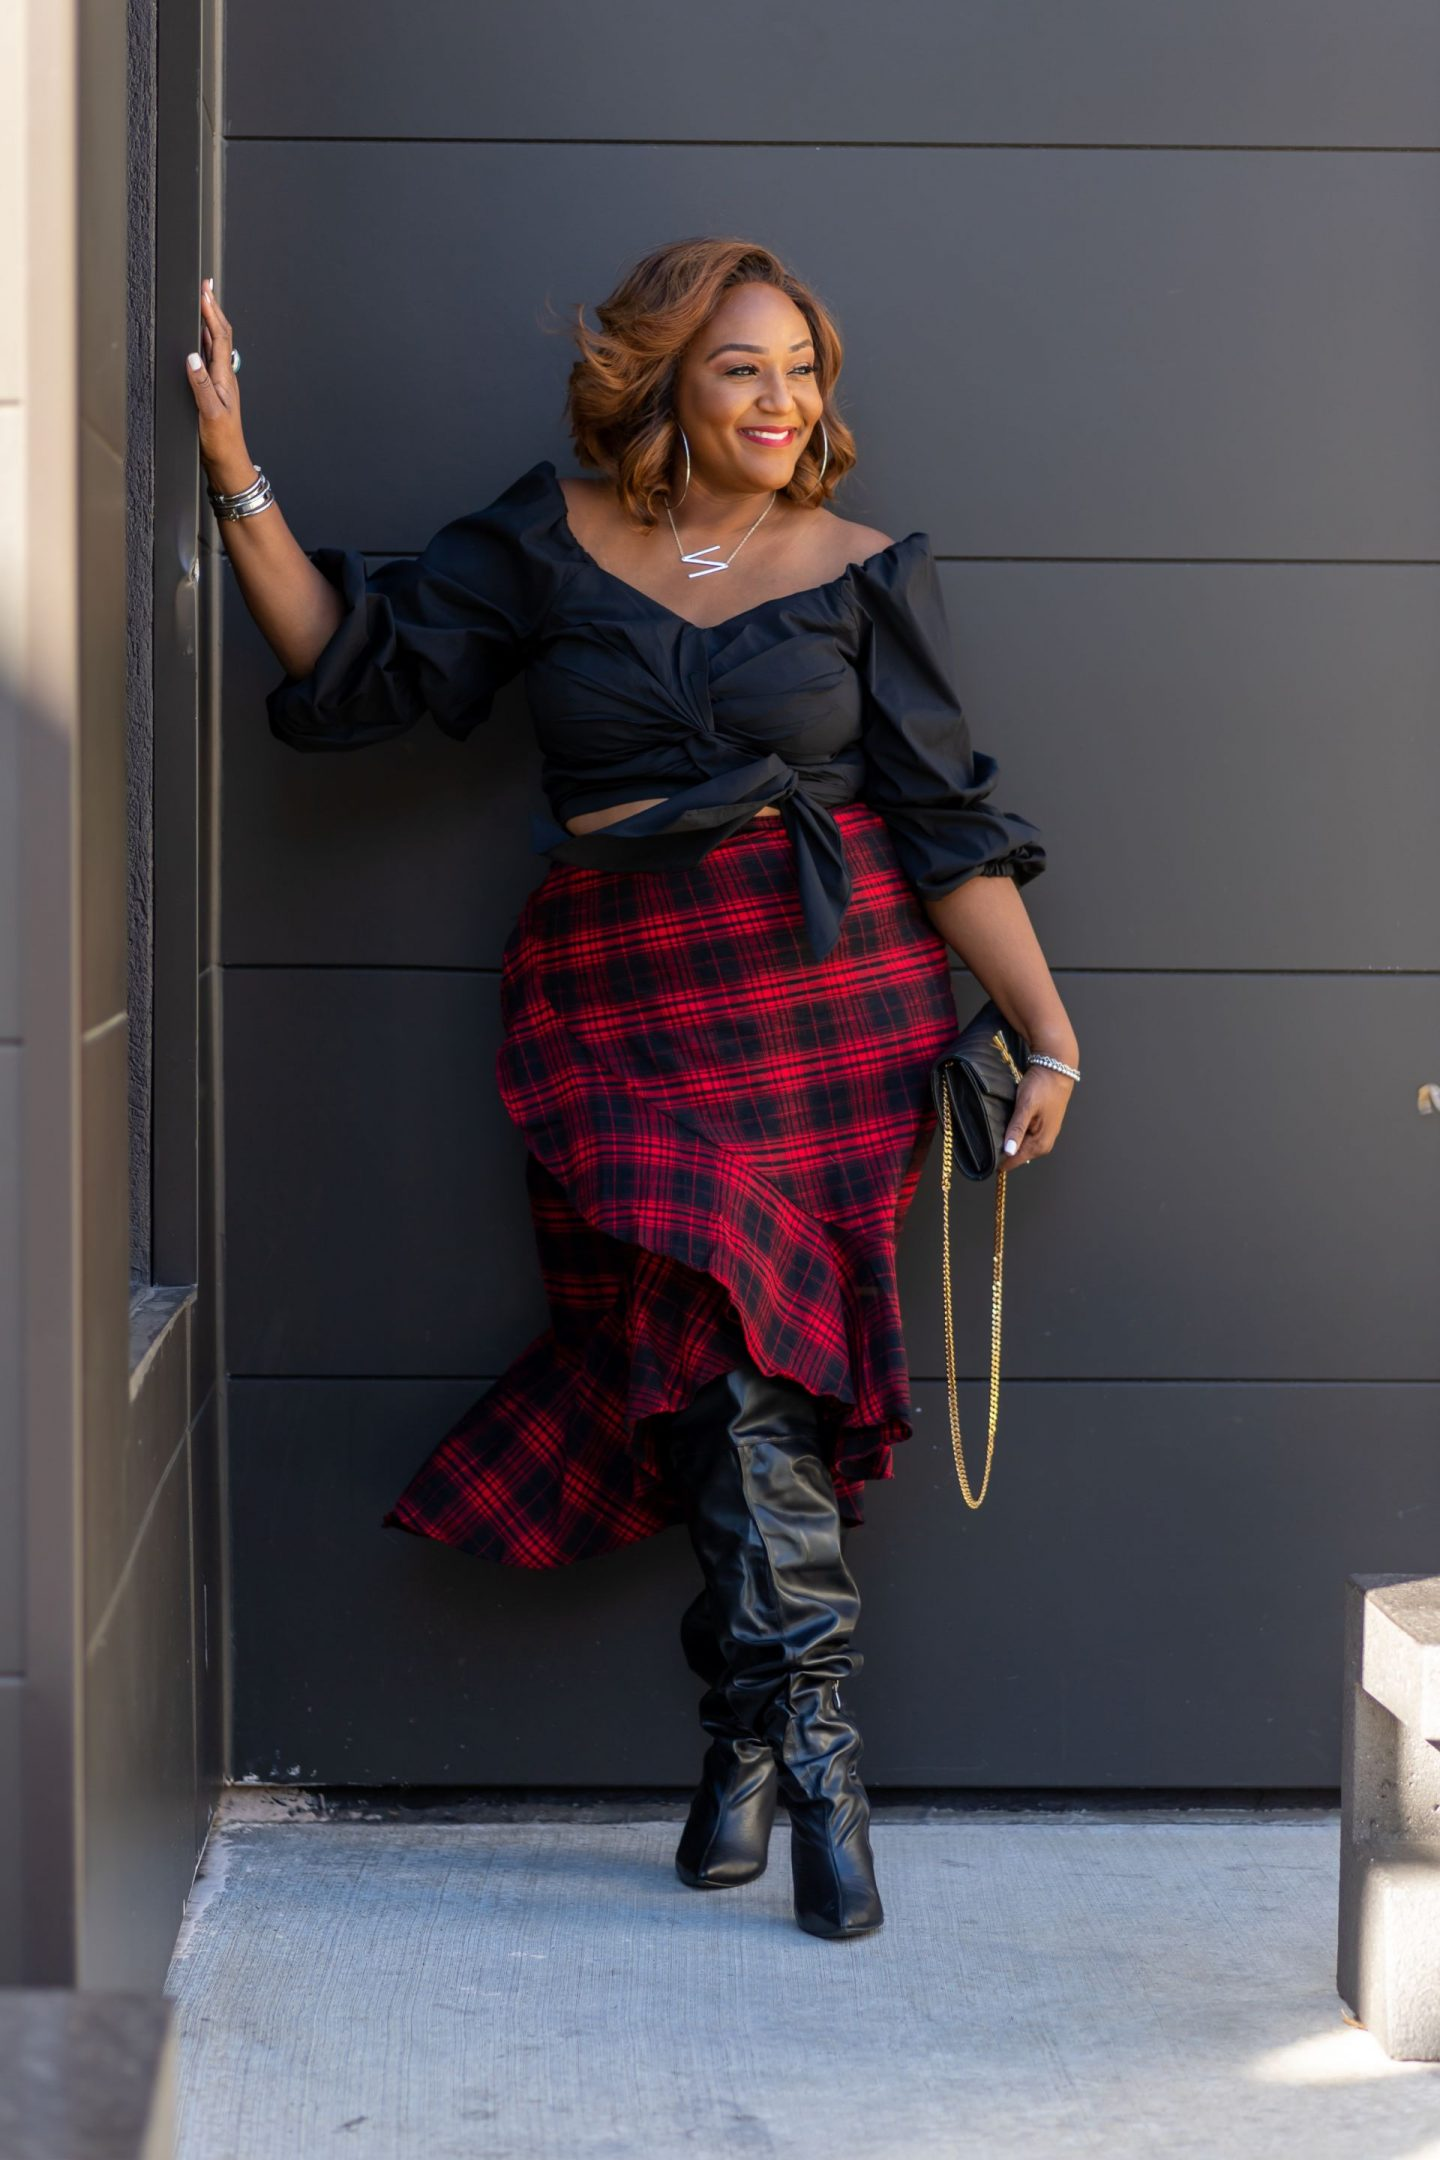 Black woman leaning on wall wearing over the knee boots